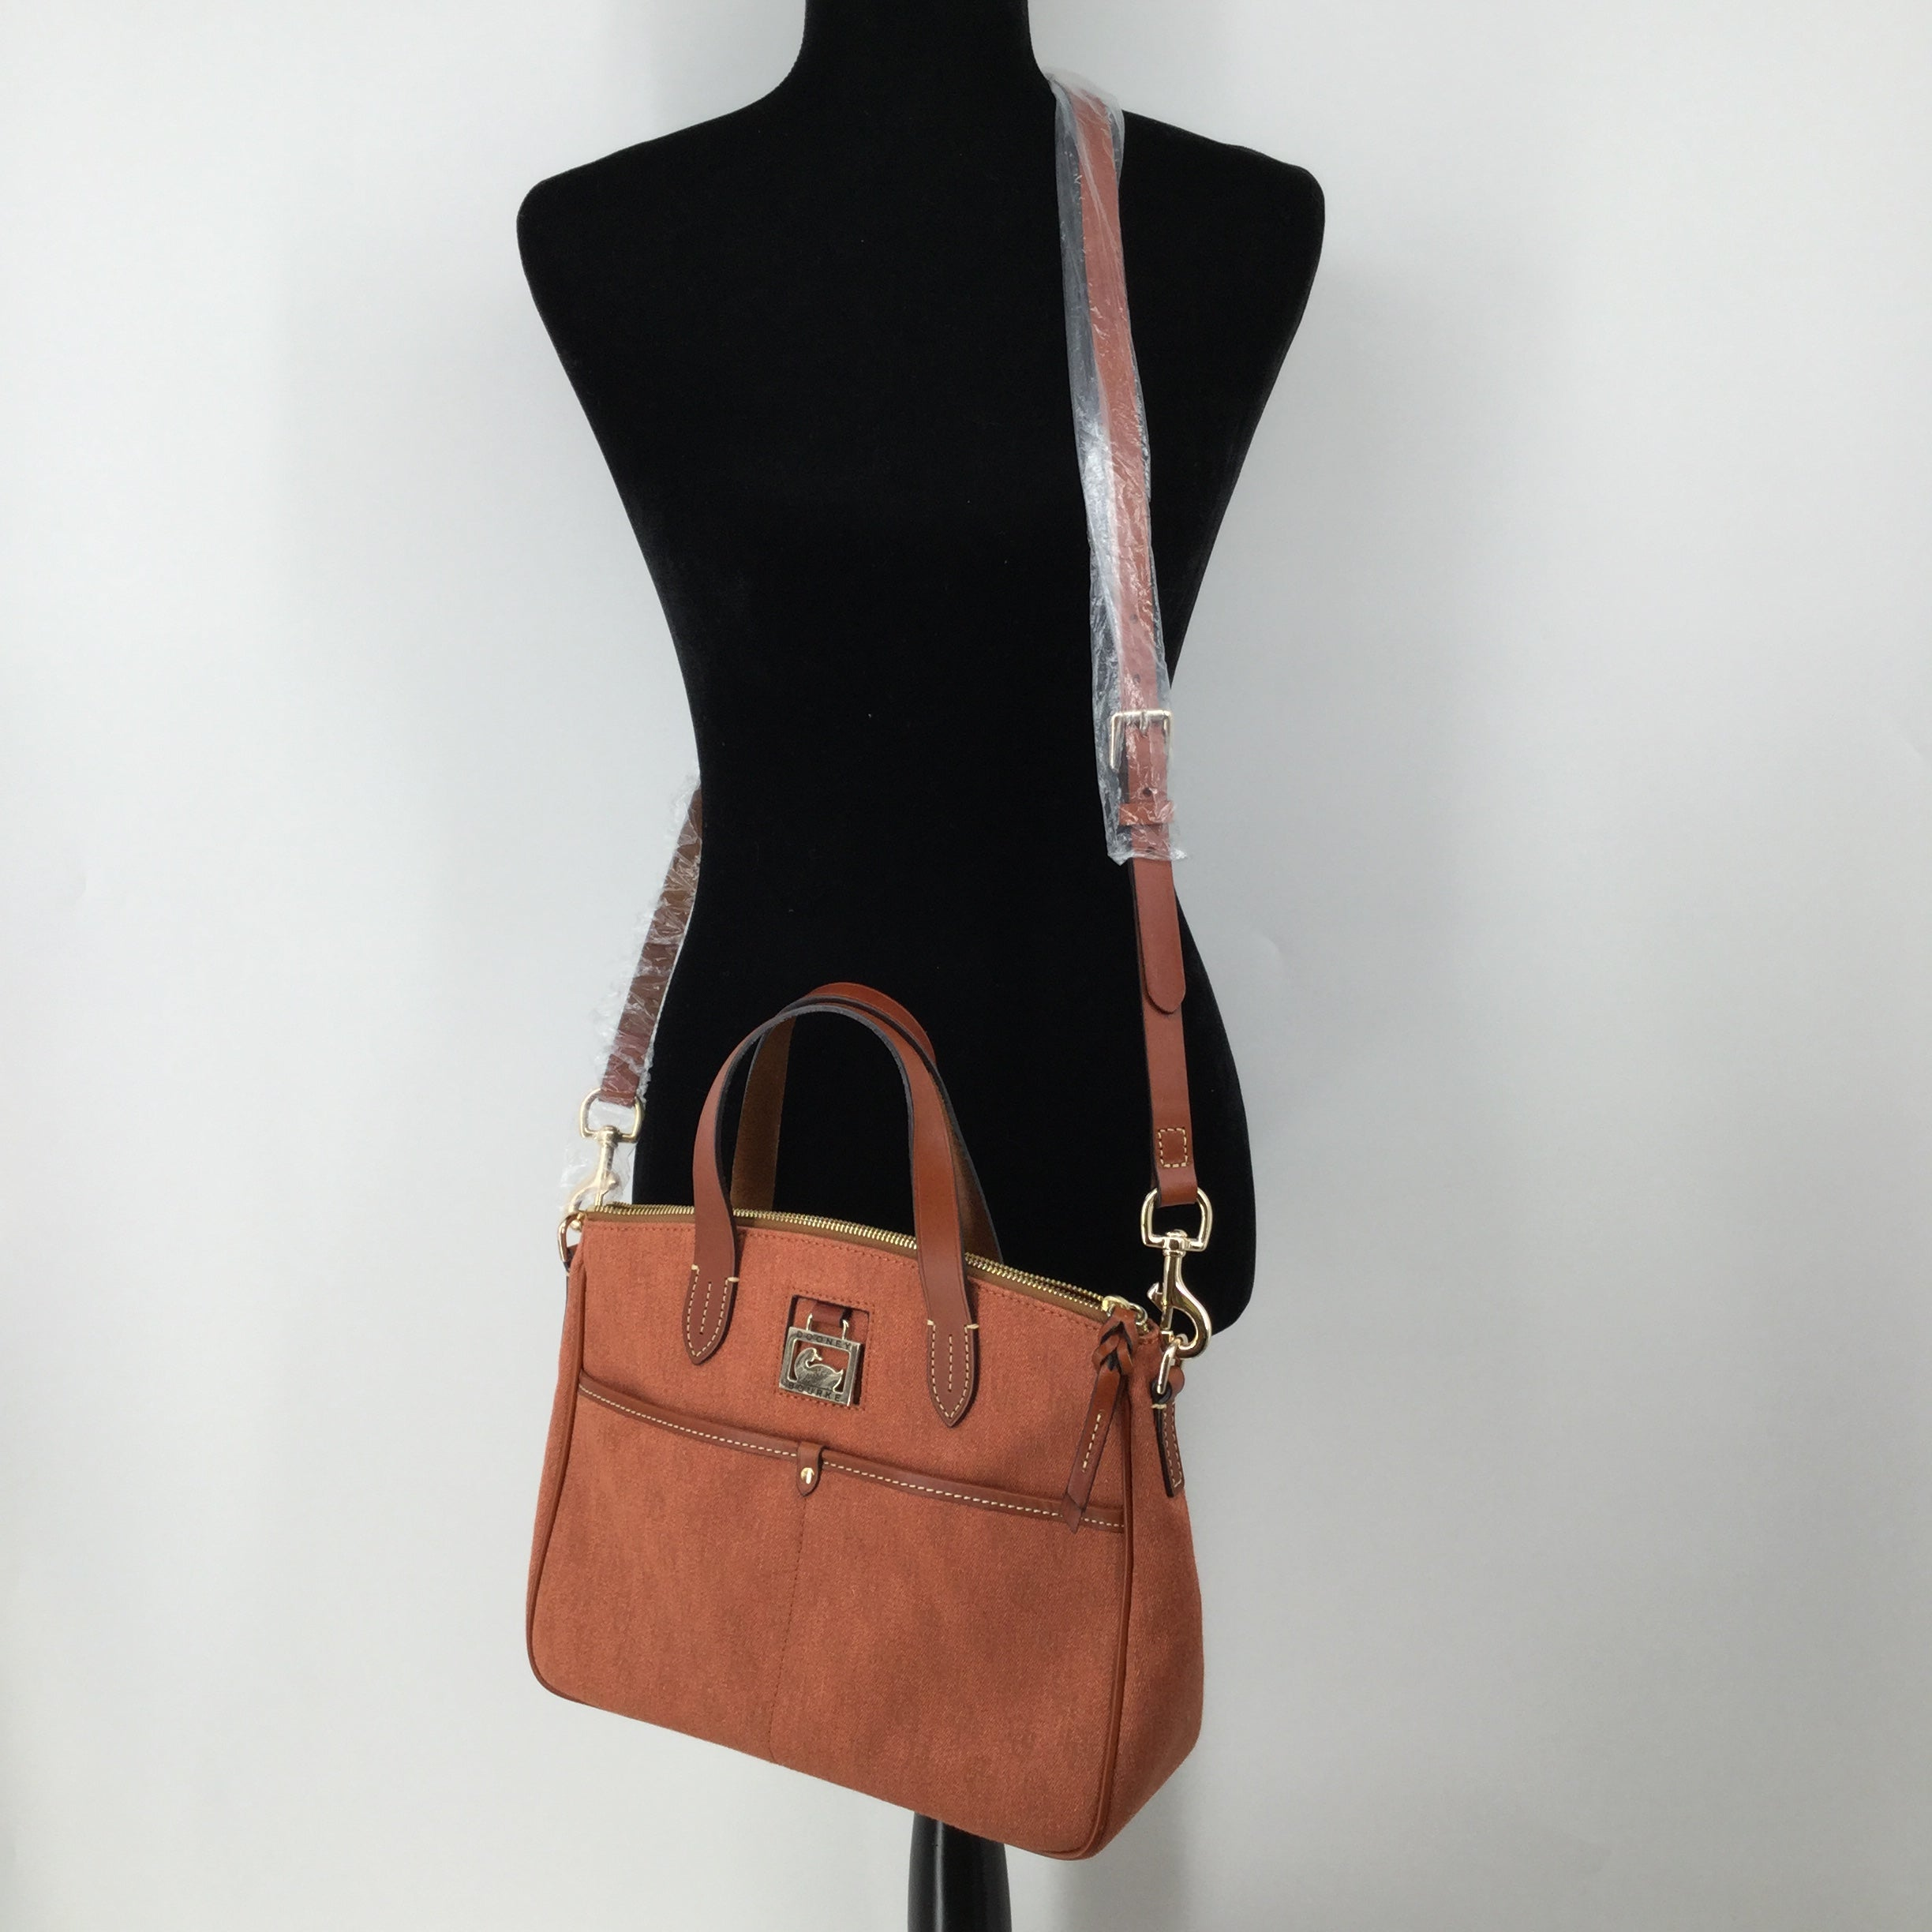 Dooney And Bourke, Camel, Size Medium - CHECK OUT THIS SUPER CHIC CAMEL COLORED DOONEY AND BOURKE. GREAT CONDITION, COMES WITH ADJUSTABLE STRAP TO MAKE IT A CROSSBODY OR YOU CAN JUST USE IT AS A HANDBAG. ALSO INCLUDES SLEEPER BAG.